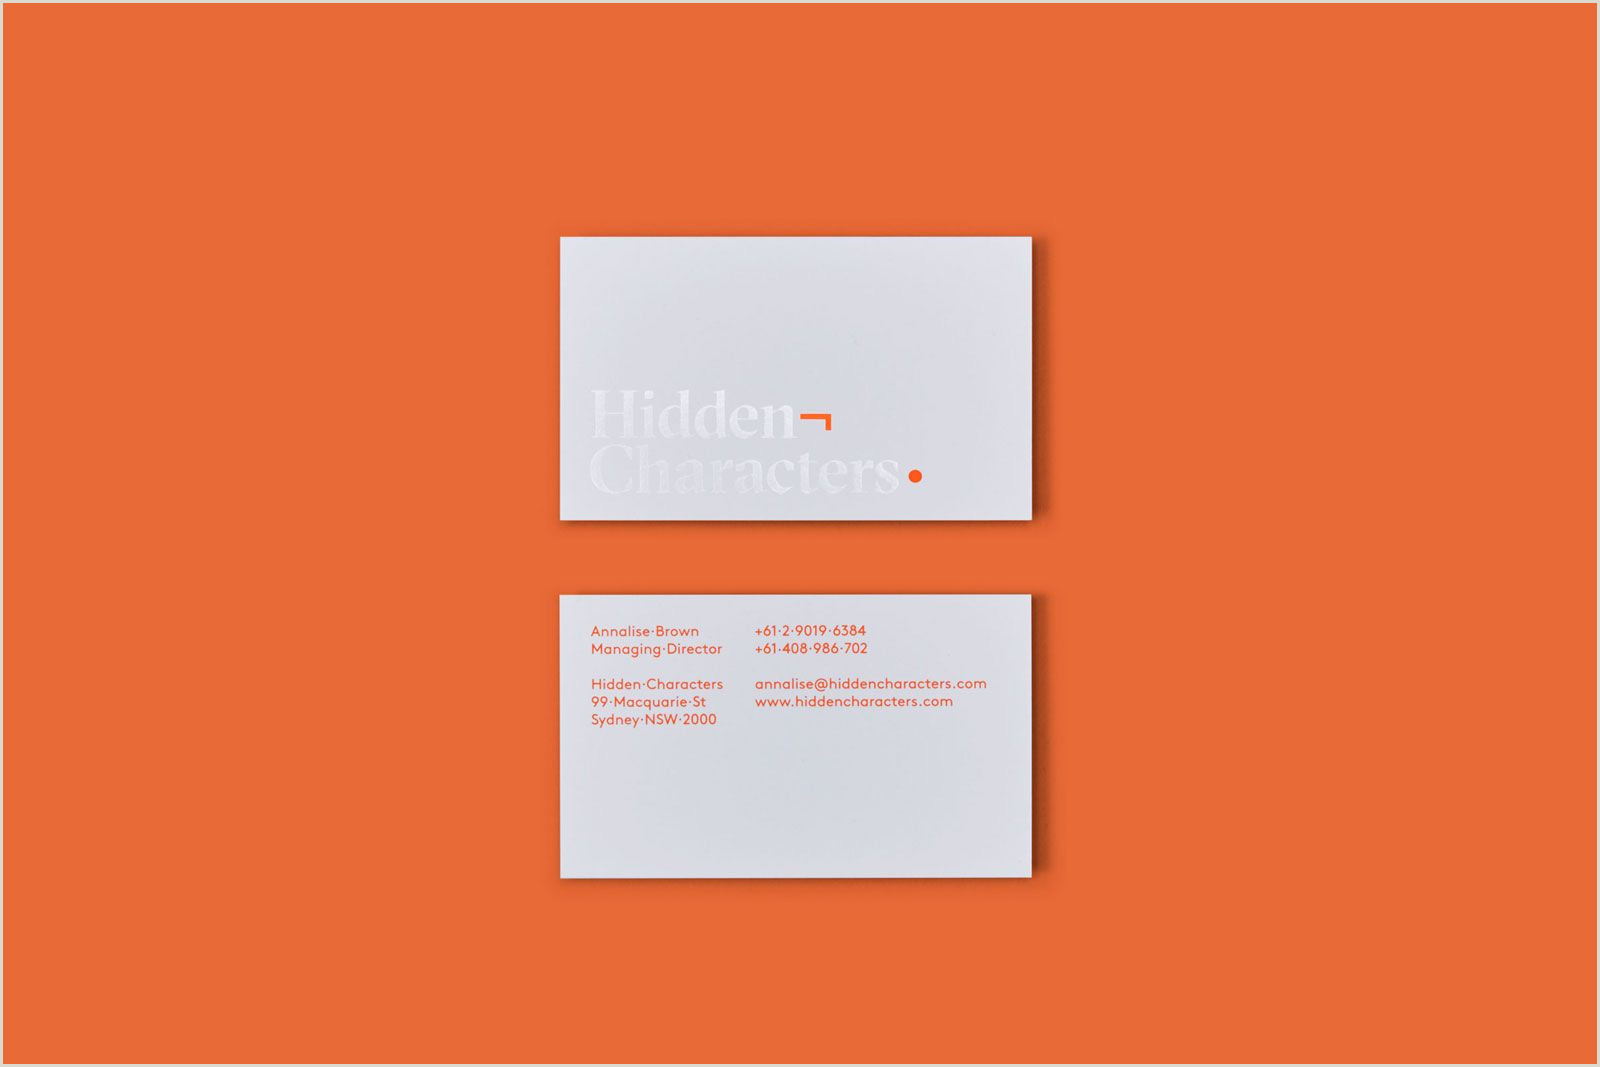 Unique Shaped Business Cards Ticket Hidden Characters – Blog – Grilli Type – Independent Swiss